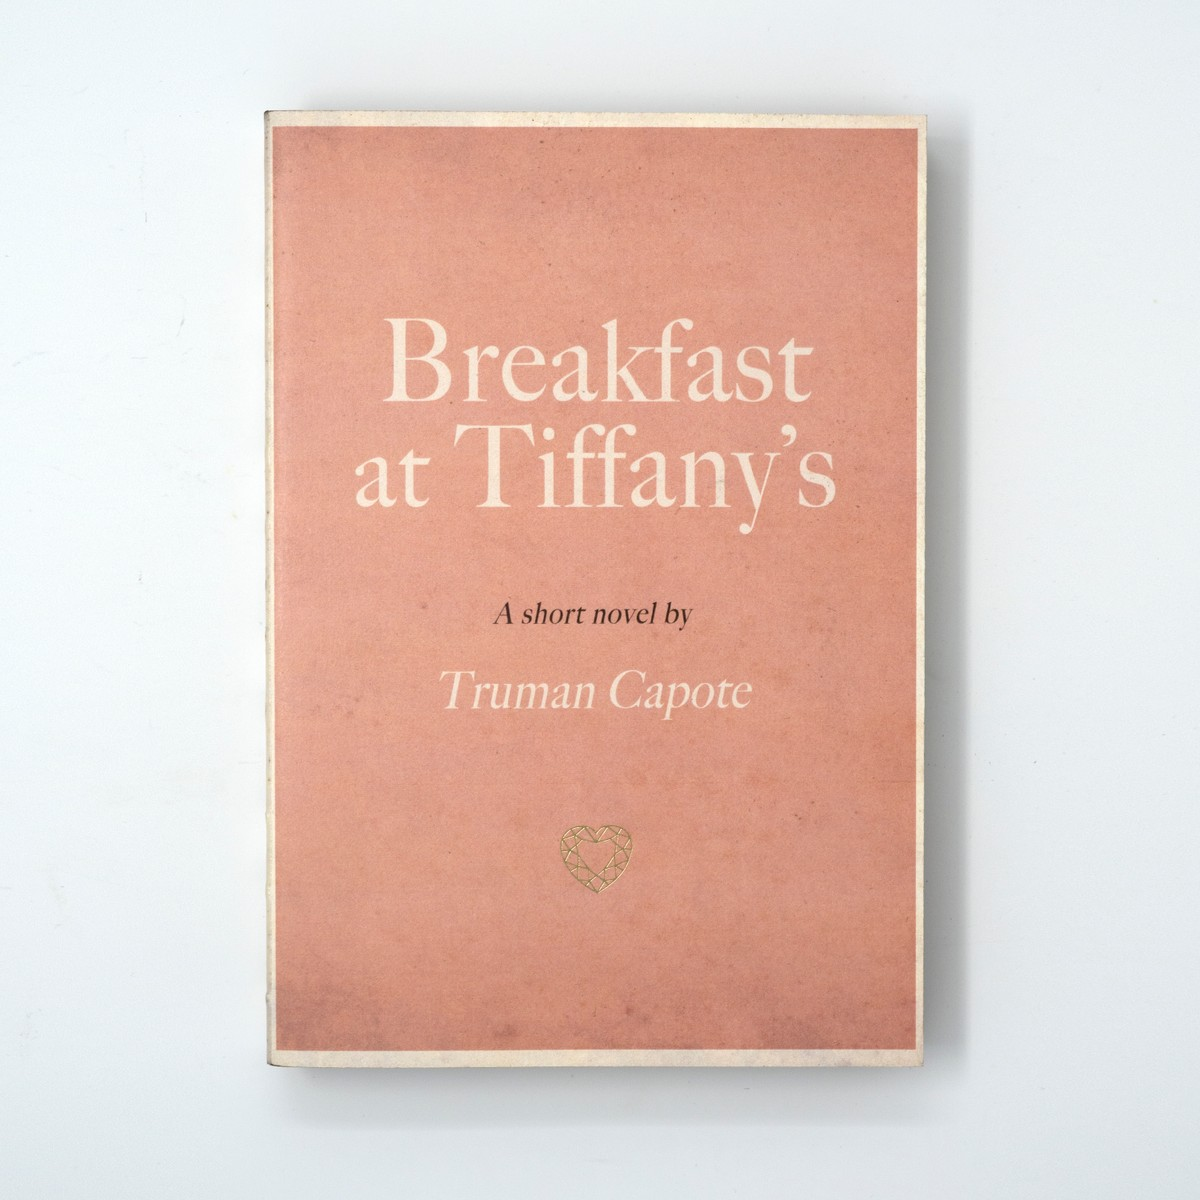 Photo of Breakfast at Tiffany's Notebook